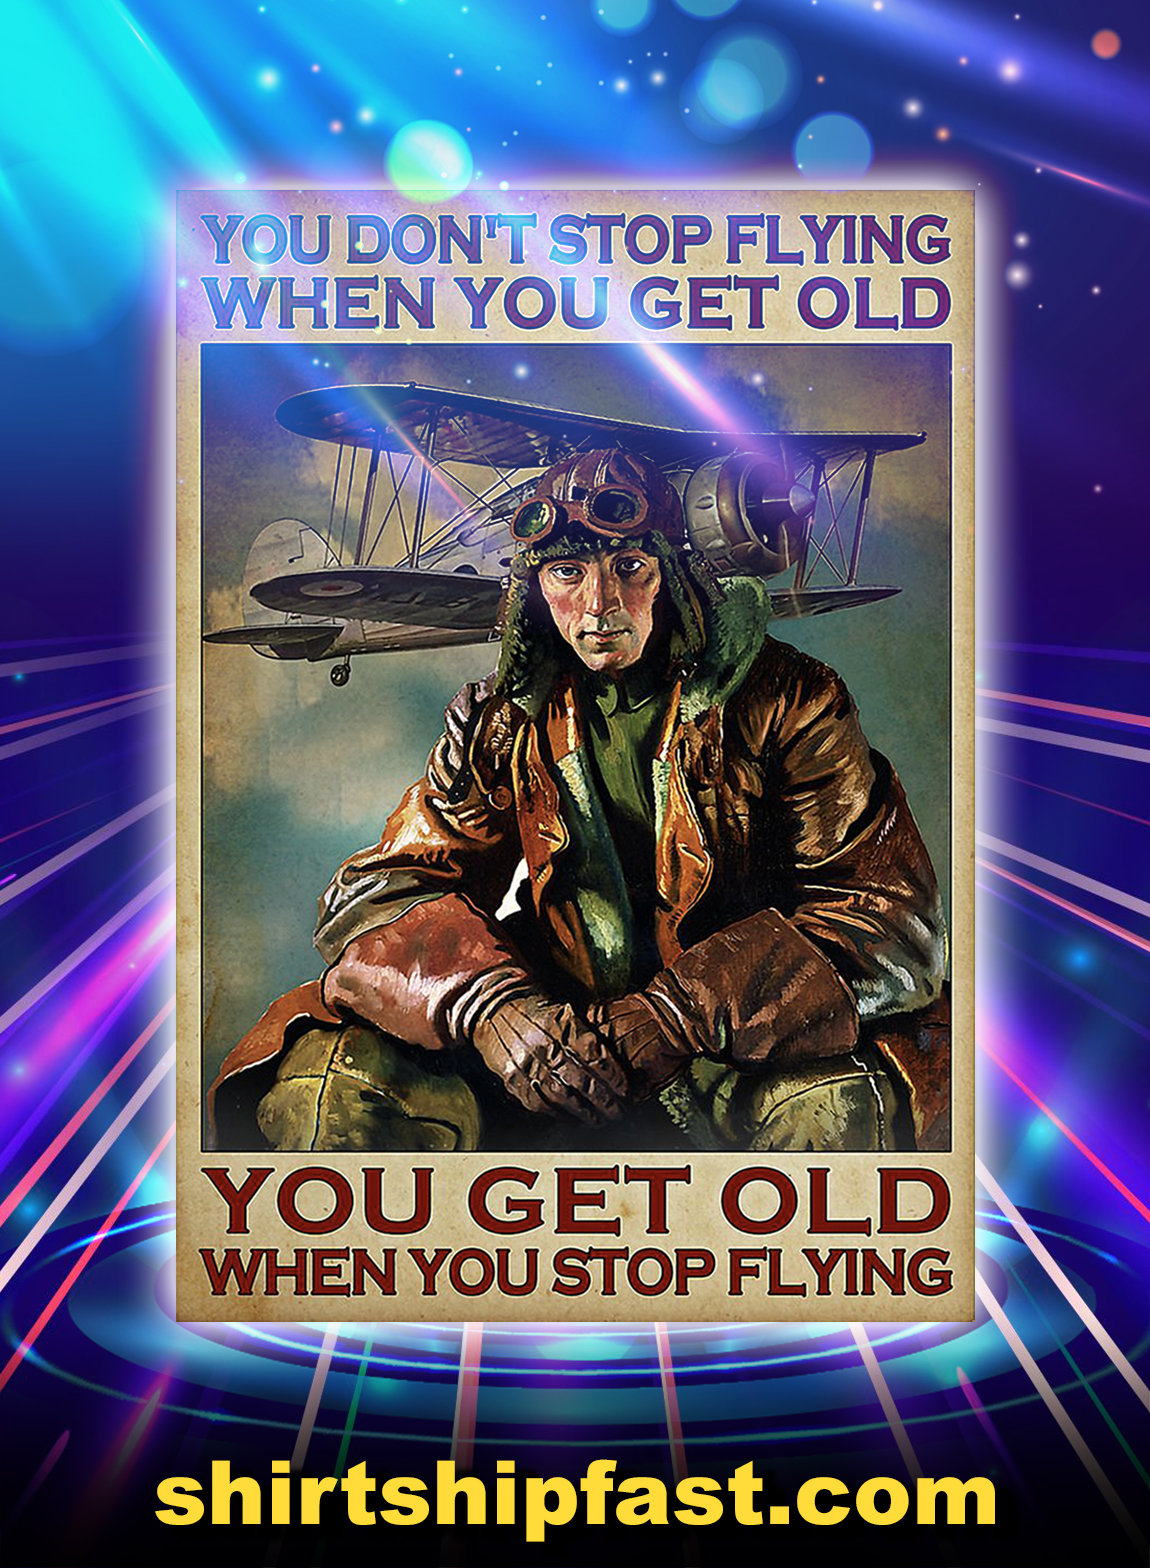 Poster Pilot you don't stop flying when you get old - A2